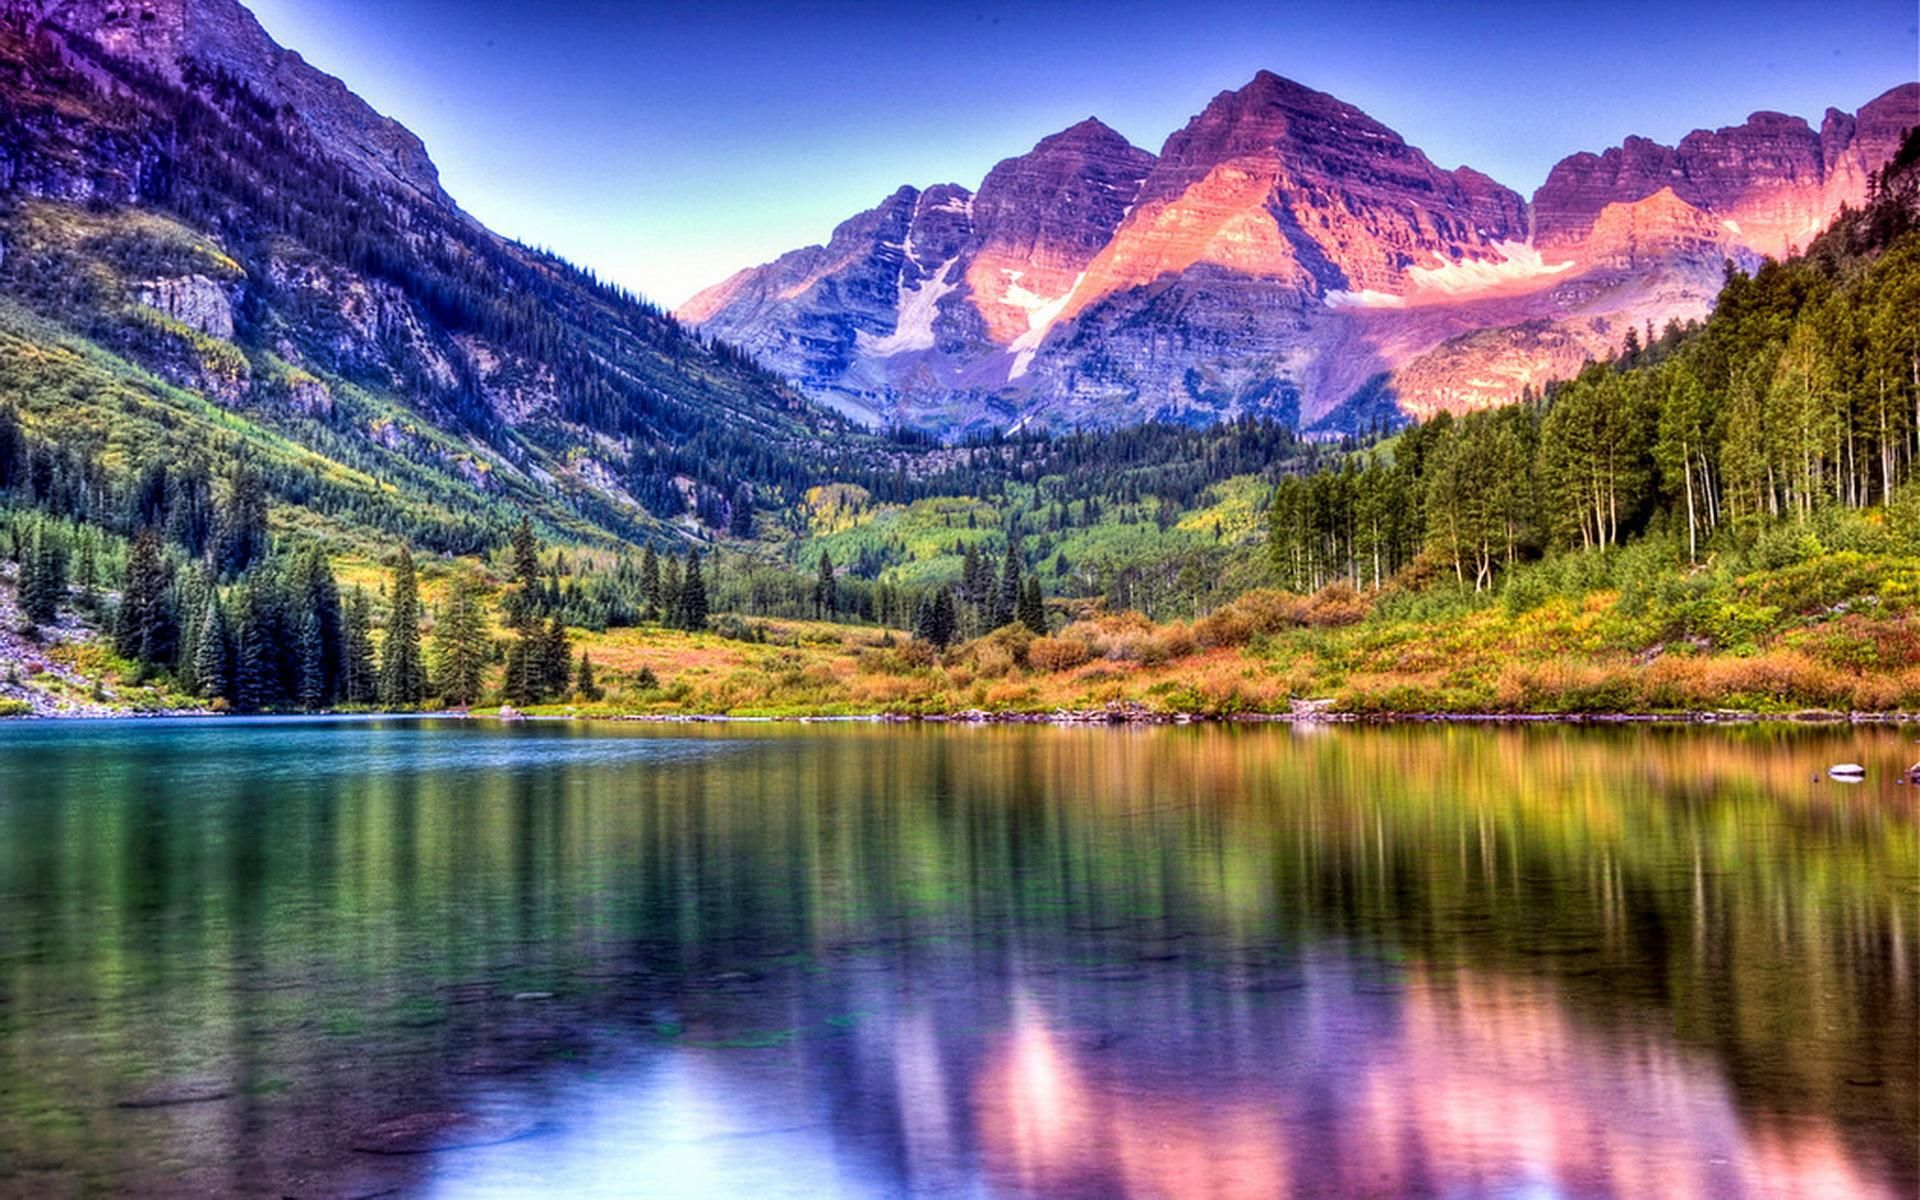 colorado wallpaper full hd #1y4 | earth | pinterest